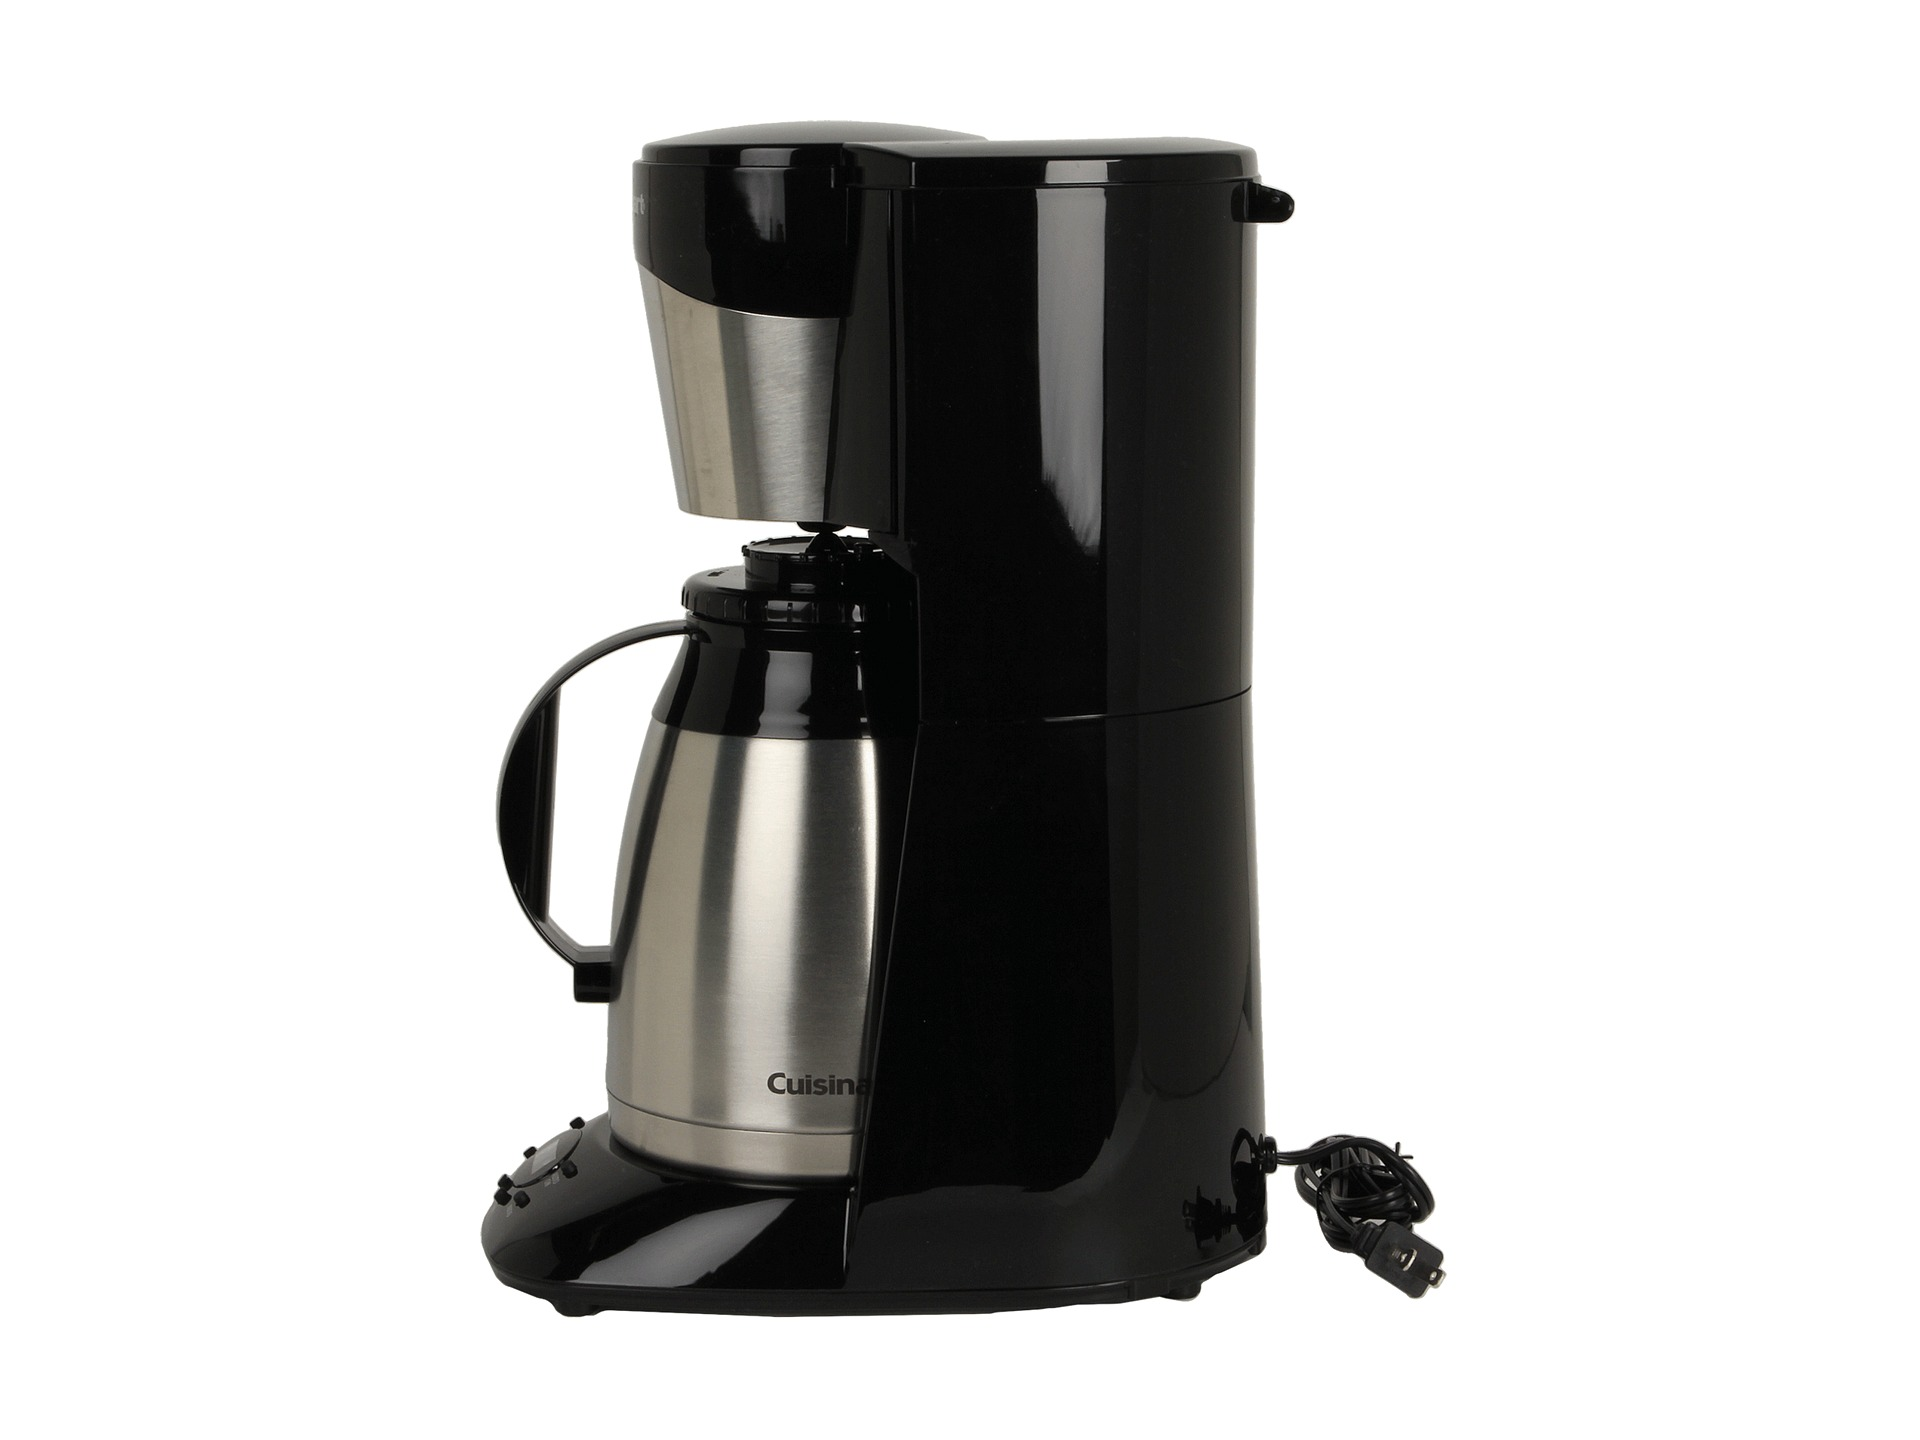 Cuisinart Coffee Maker Manual Dtc 975bkn : cuisinart dtc 975bkn thermal 12 - 28 images - hamilton 45238 thermal coffeemaker free shipping ...